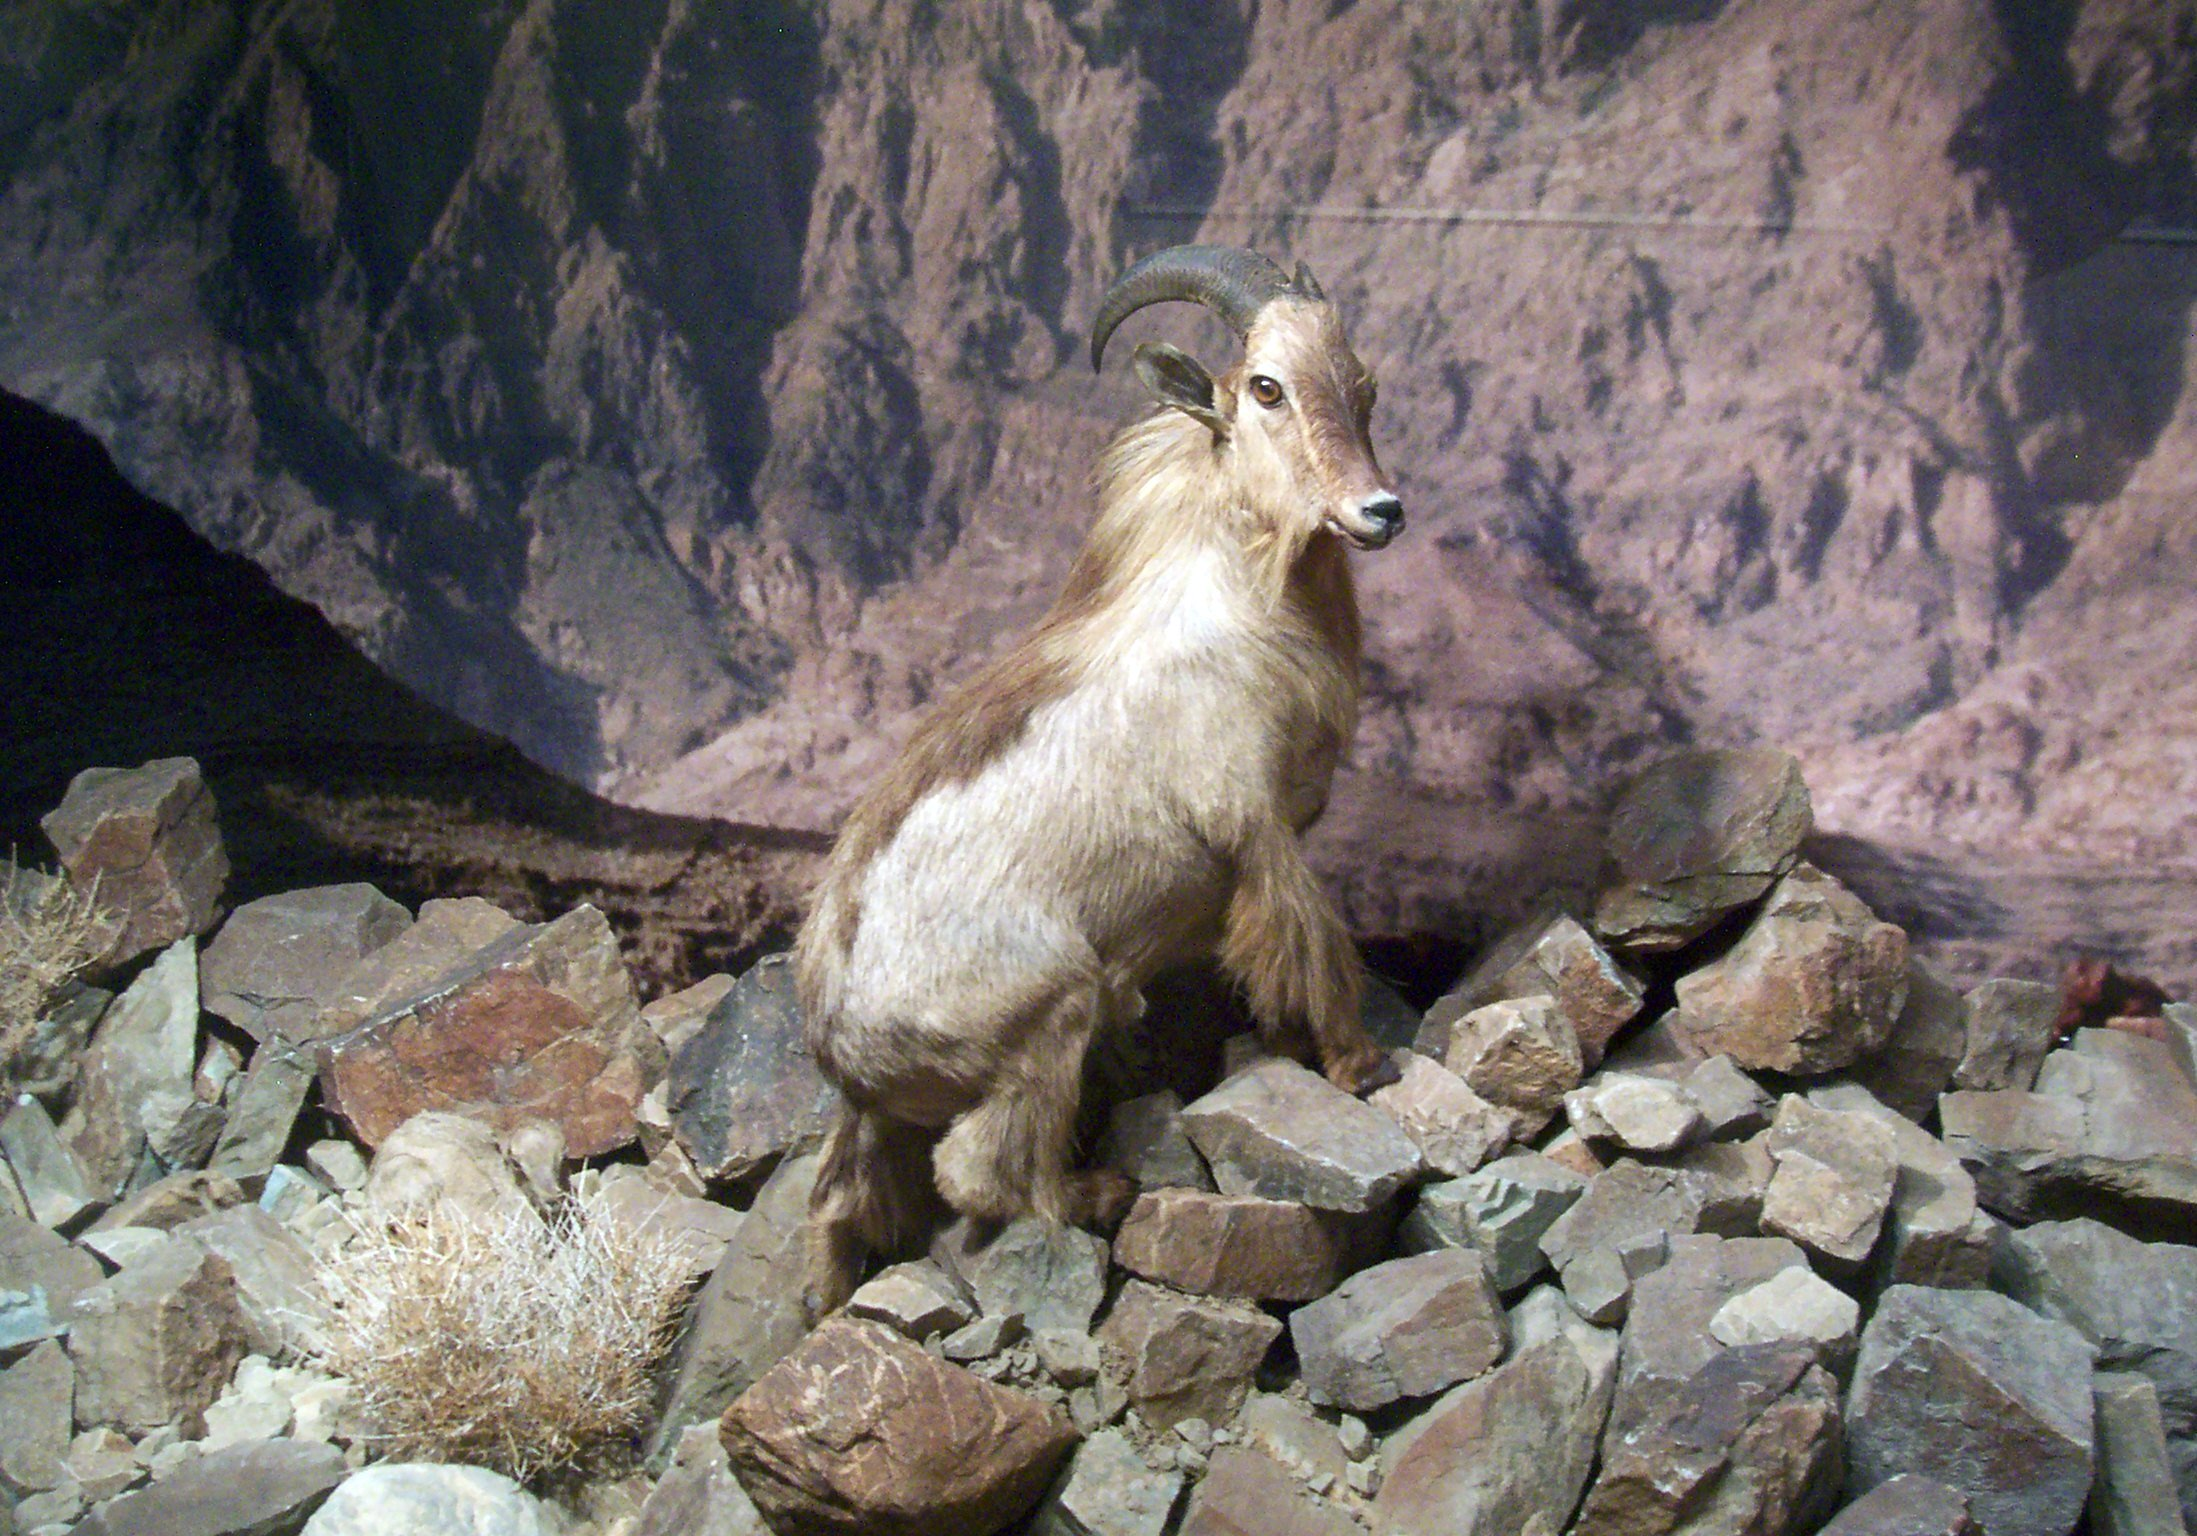 File:Stuffed Arabian Tahr.jpg - Wikimedia Commons